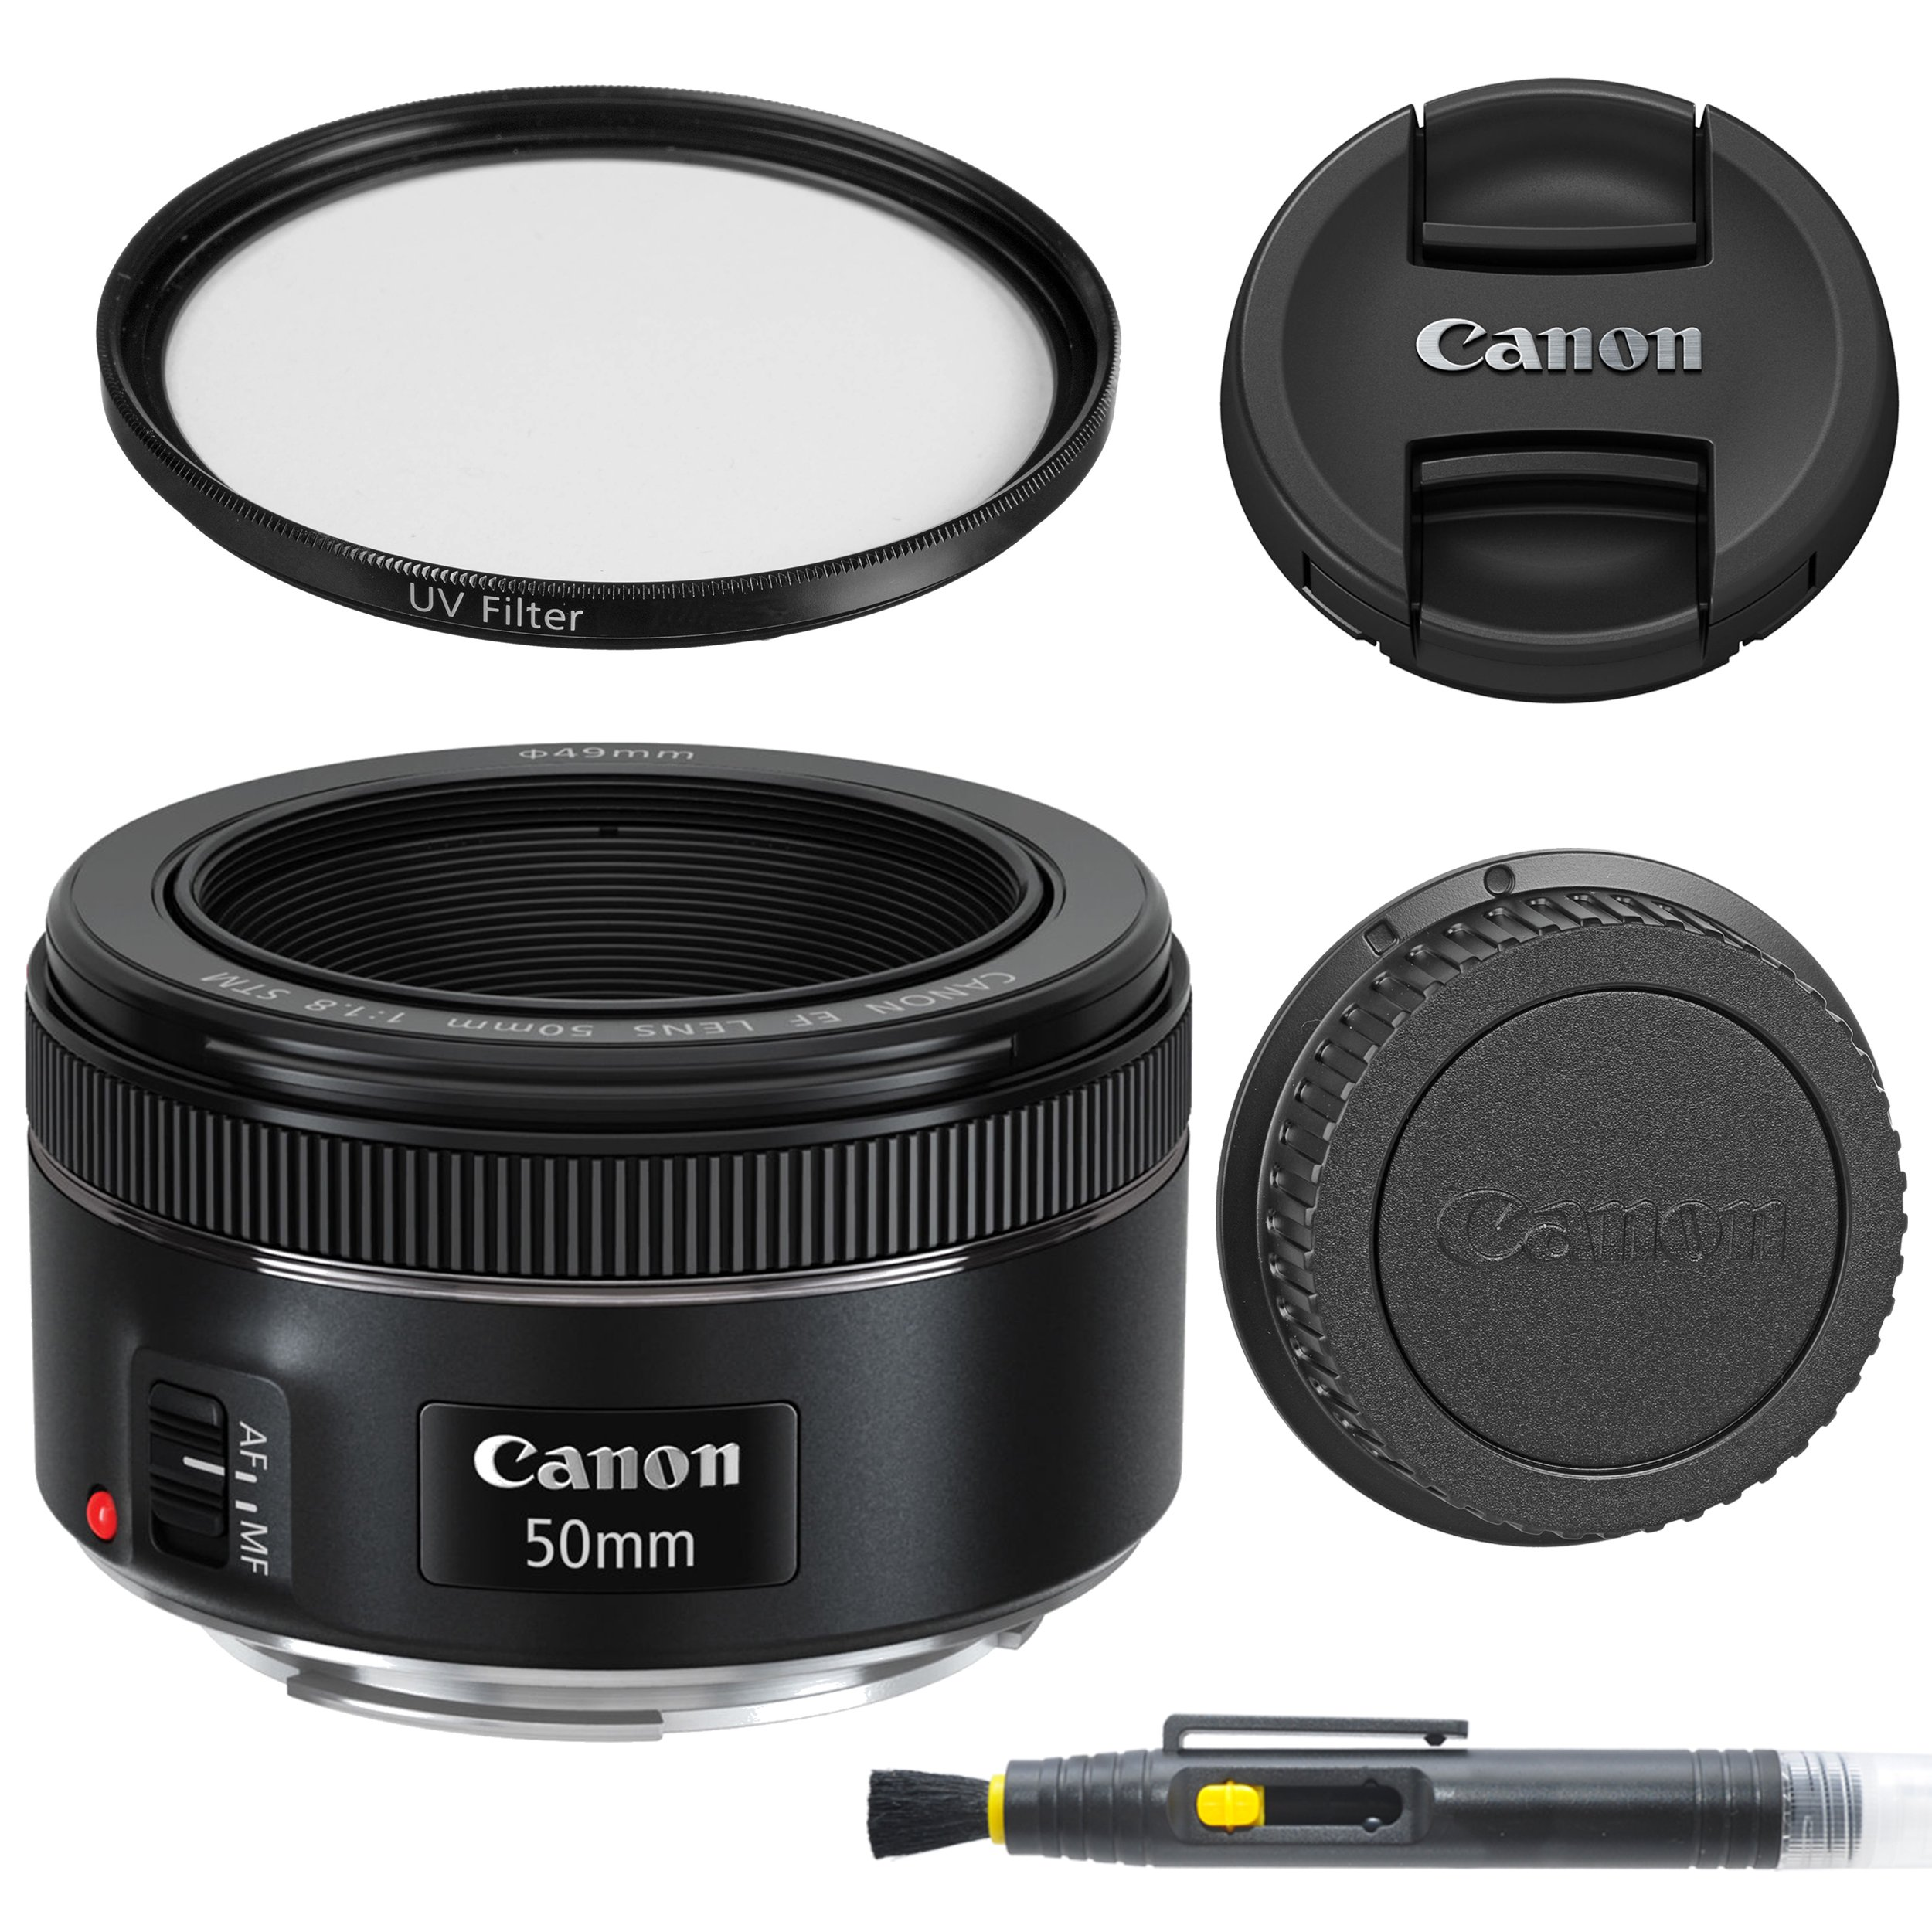 canon-ef-50mm-f18-stm-lens-with-glass-uv-filter-front-and-rear-lens-caps-and-deluxe-cleaning-pen-lens-accessory-bundle-50-mm-f18-international-version